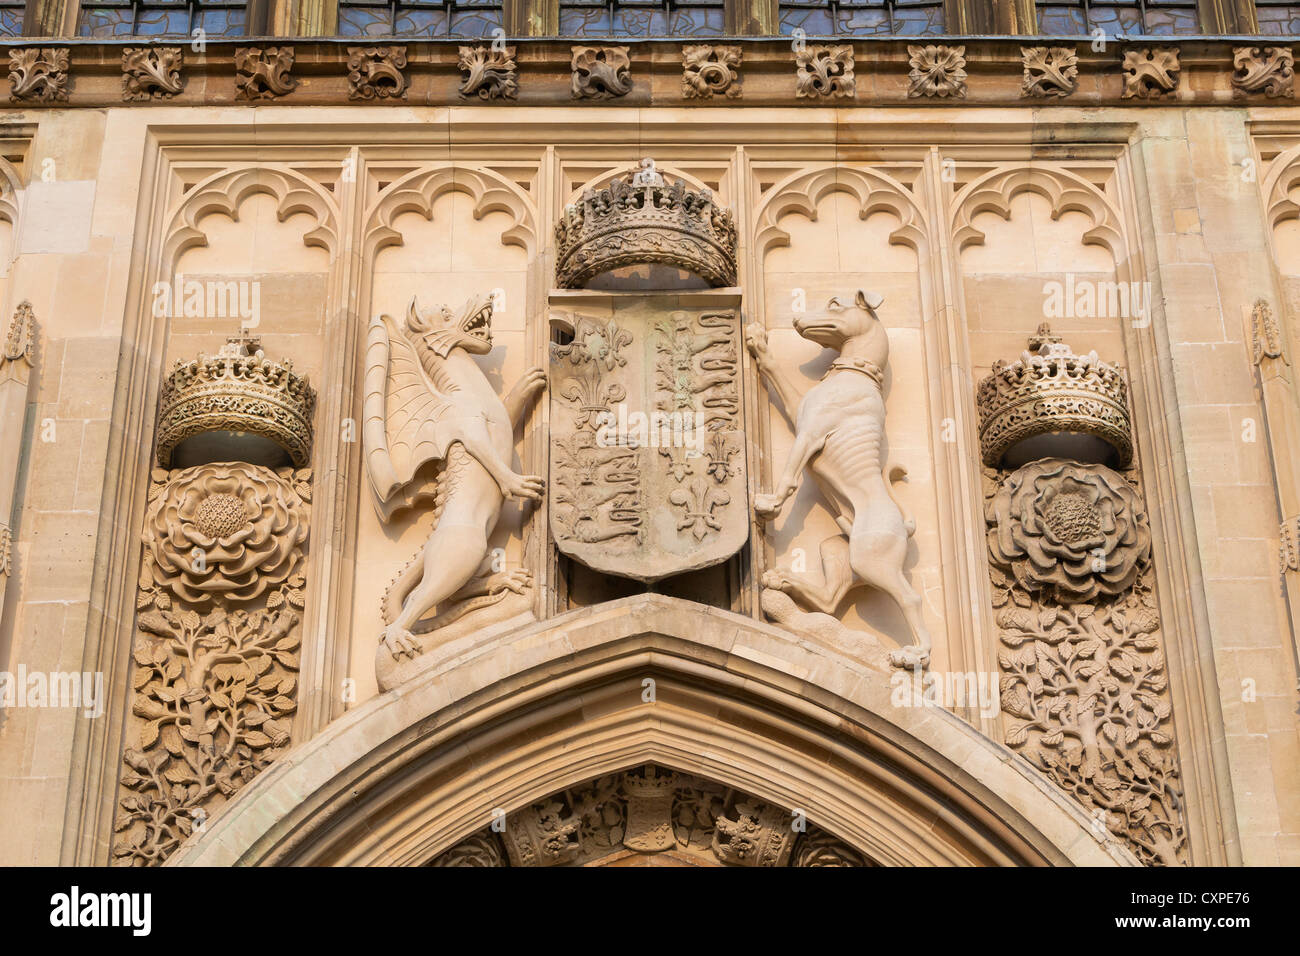 Detail of the emblems above the entrance to King's College Chapel, Cambridge, England - Stock Image